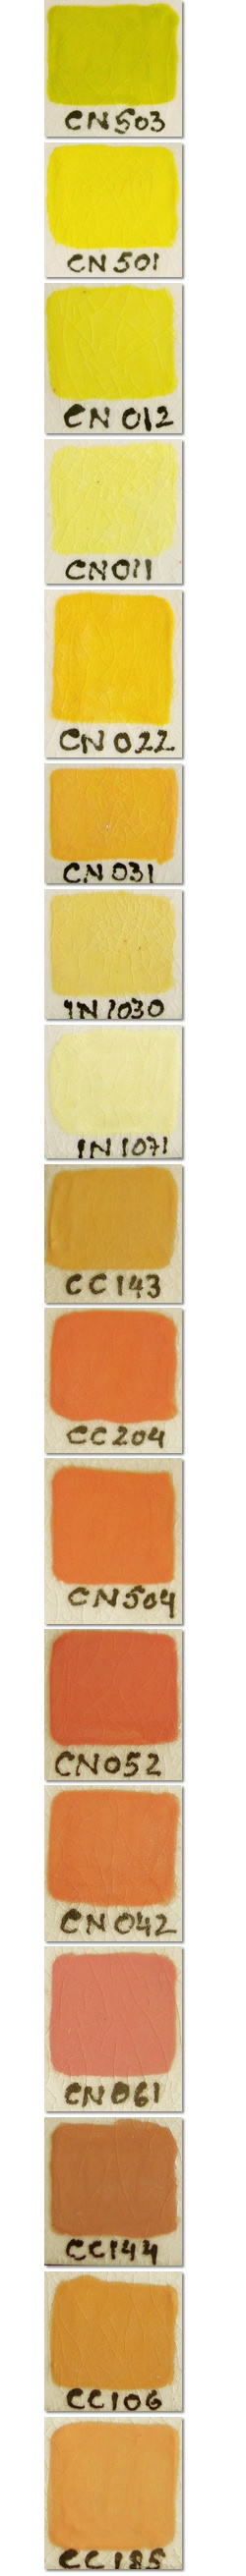 Cover-Coat® Opaque Underglazes  If you love layers, coat your pieces with Cover-Coat® Opaque Underglazes! Applied directly to greenware, soft-fired bisque or bisque, these underglazes provide solid coverage over even the darkest colors, and are perfect for airbrushing and brushwork.: Color Chips, Colour Chart, Beats Color, Color Charts, Color Sample, Darkest Colors, Color Pattern Scenes, Color Texture